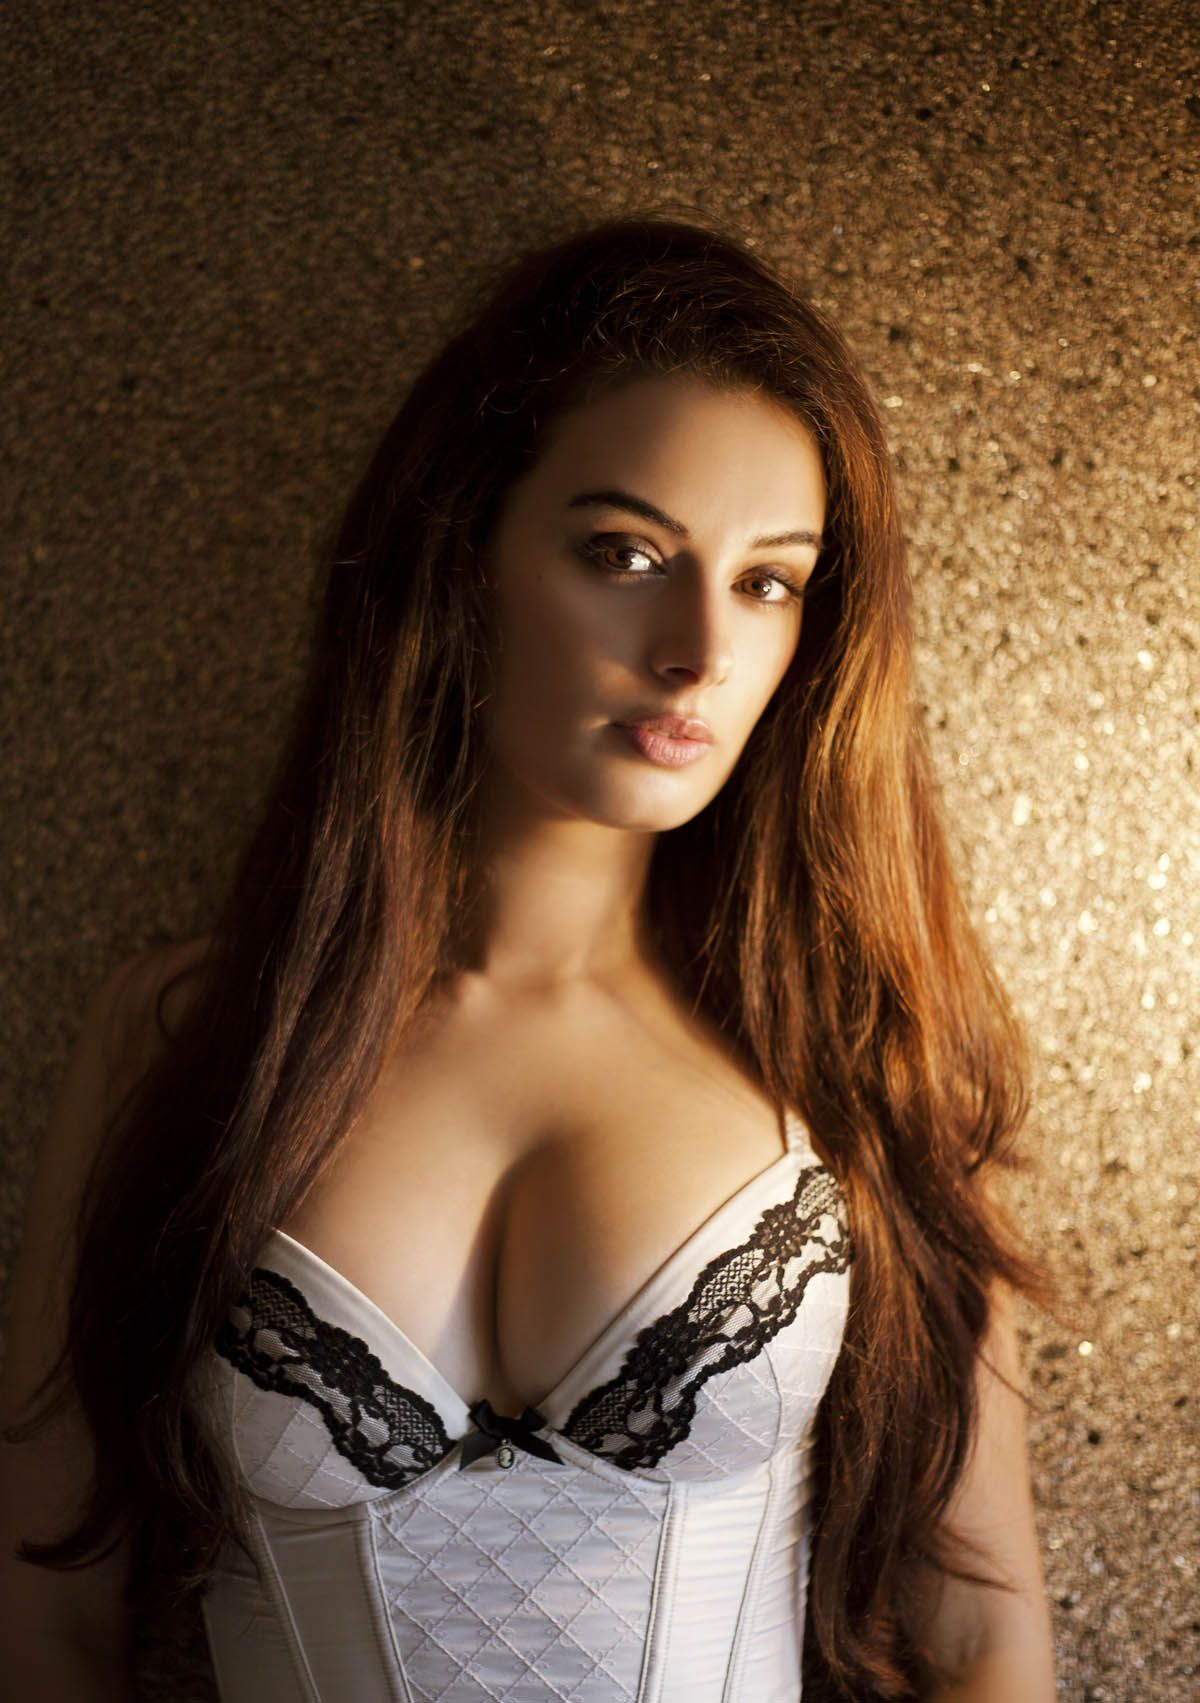 Evelyn sharma hot images